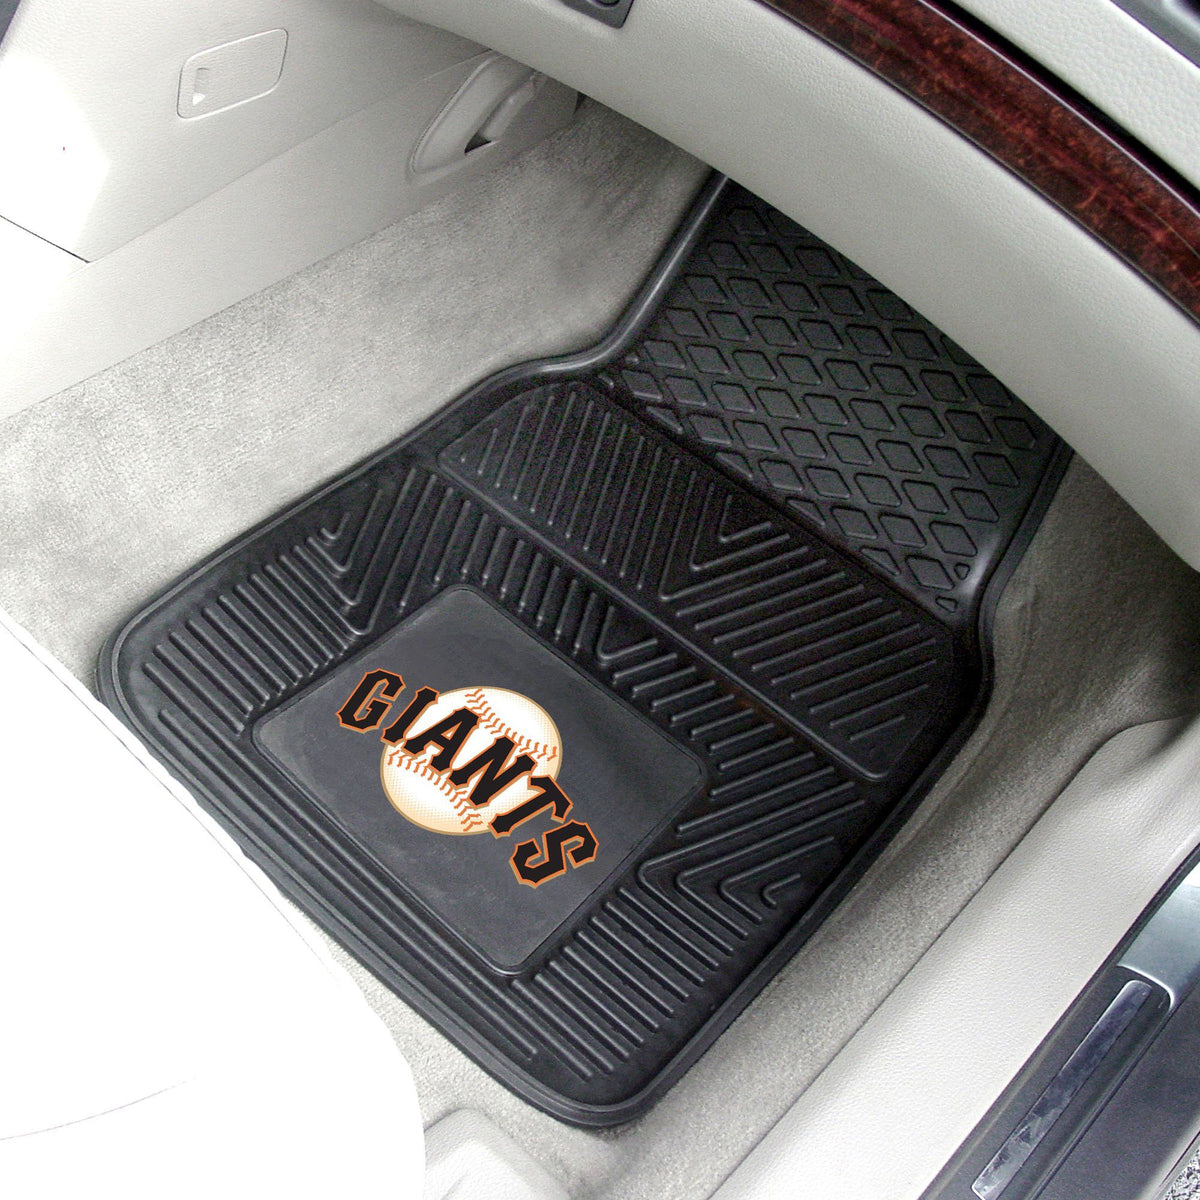 MLB - Vinyl Car Mat, 2-Piece Set MLB Mats, Front Car Mats, 2-pc Vinyl Car Mat Set, MLB, Auto Fan Mats San Francisco Giants